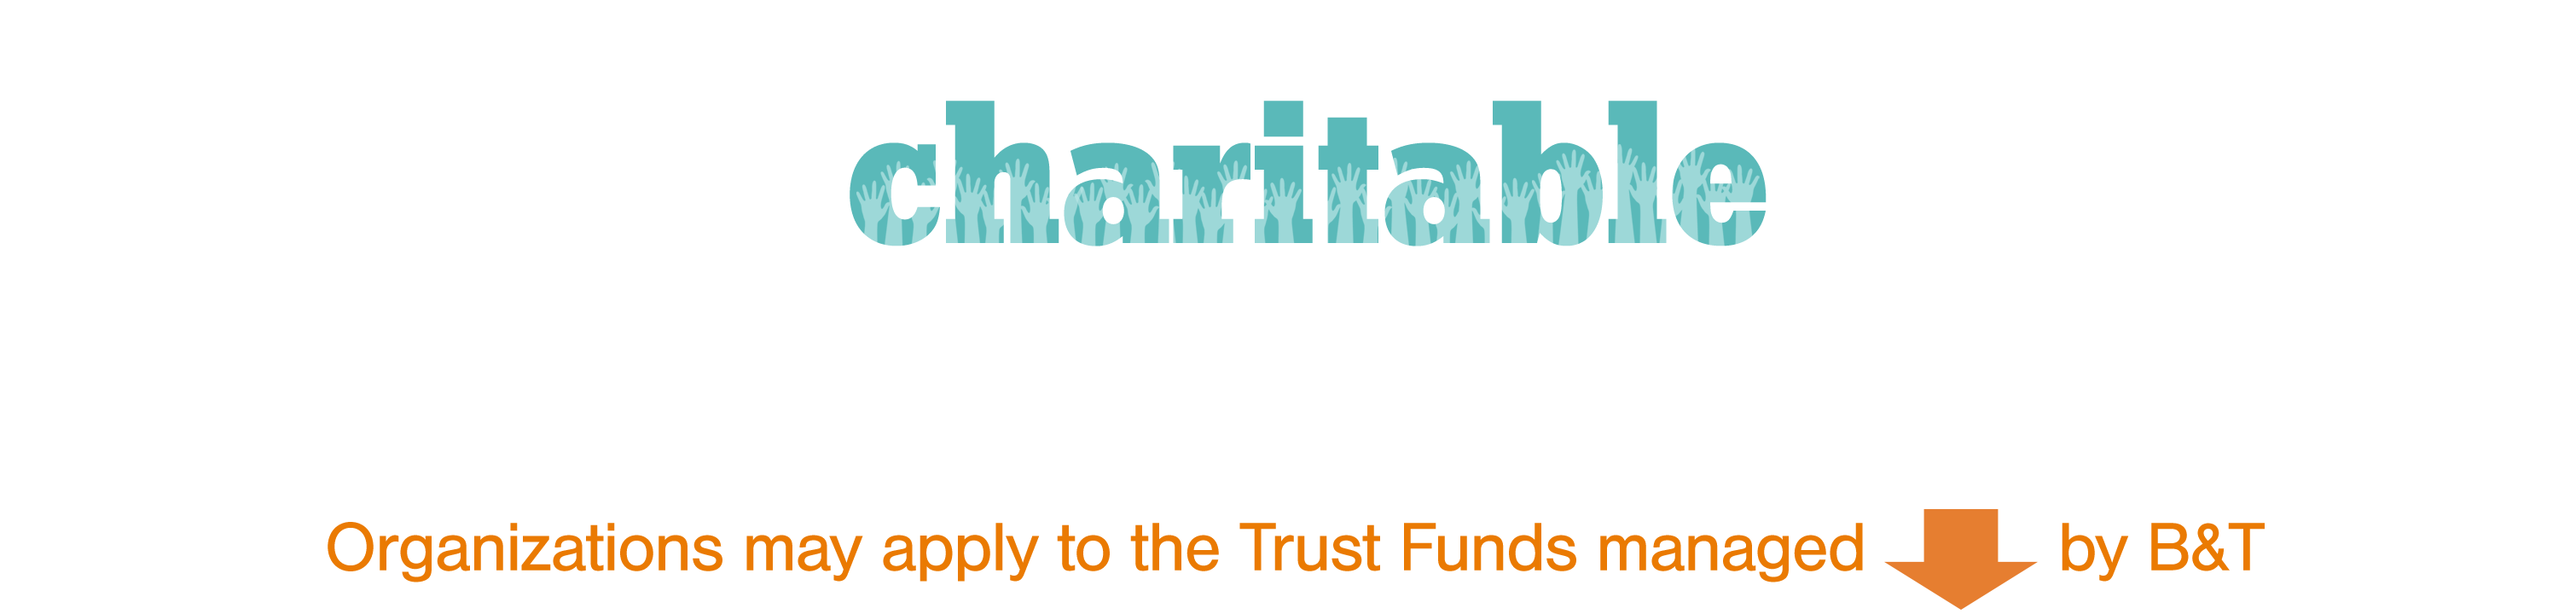 Local organizations may apply for charitable trusts funds by clicking the link below.